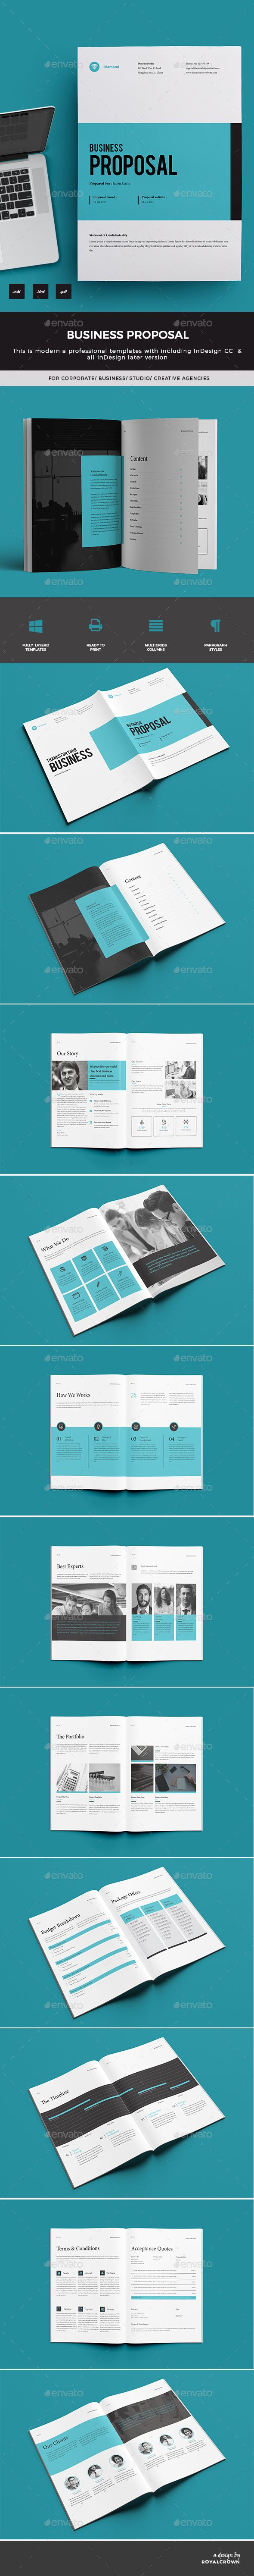 #Proposal - Proposals & #Invoices #Stationery Download here: https://graphicriver.net/item/proposal/19519103?ref=alena994